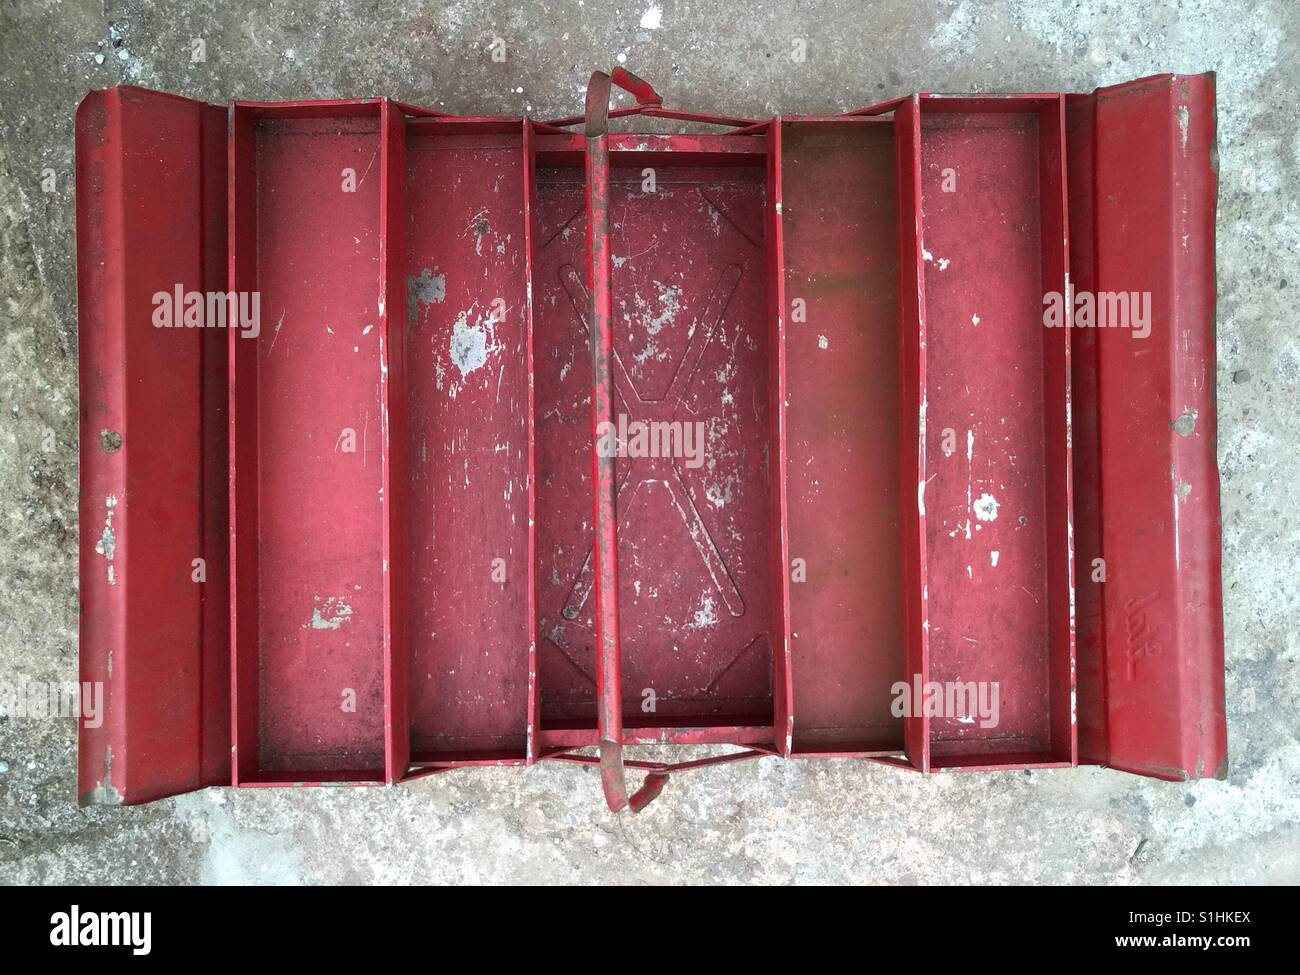 Empty toolbox. Old metal tool box with no tools. - Stock Image